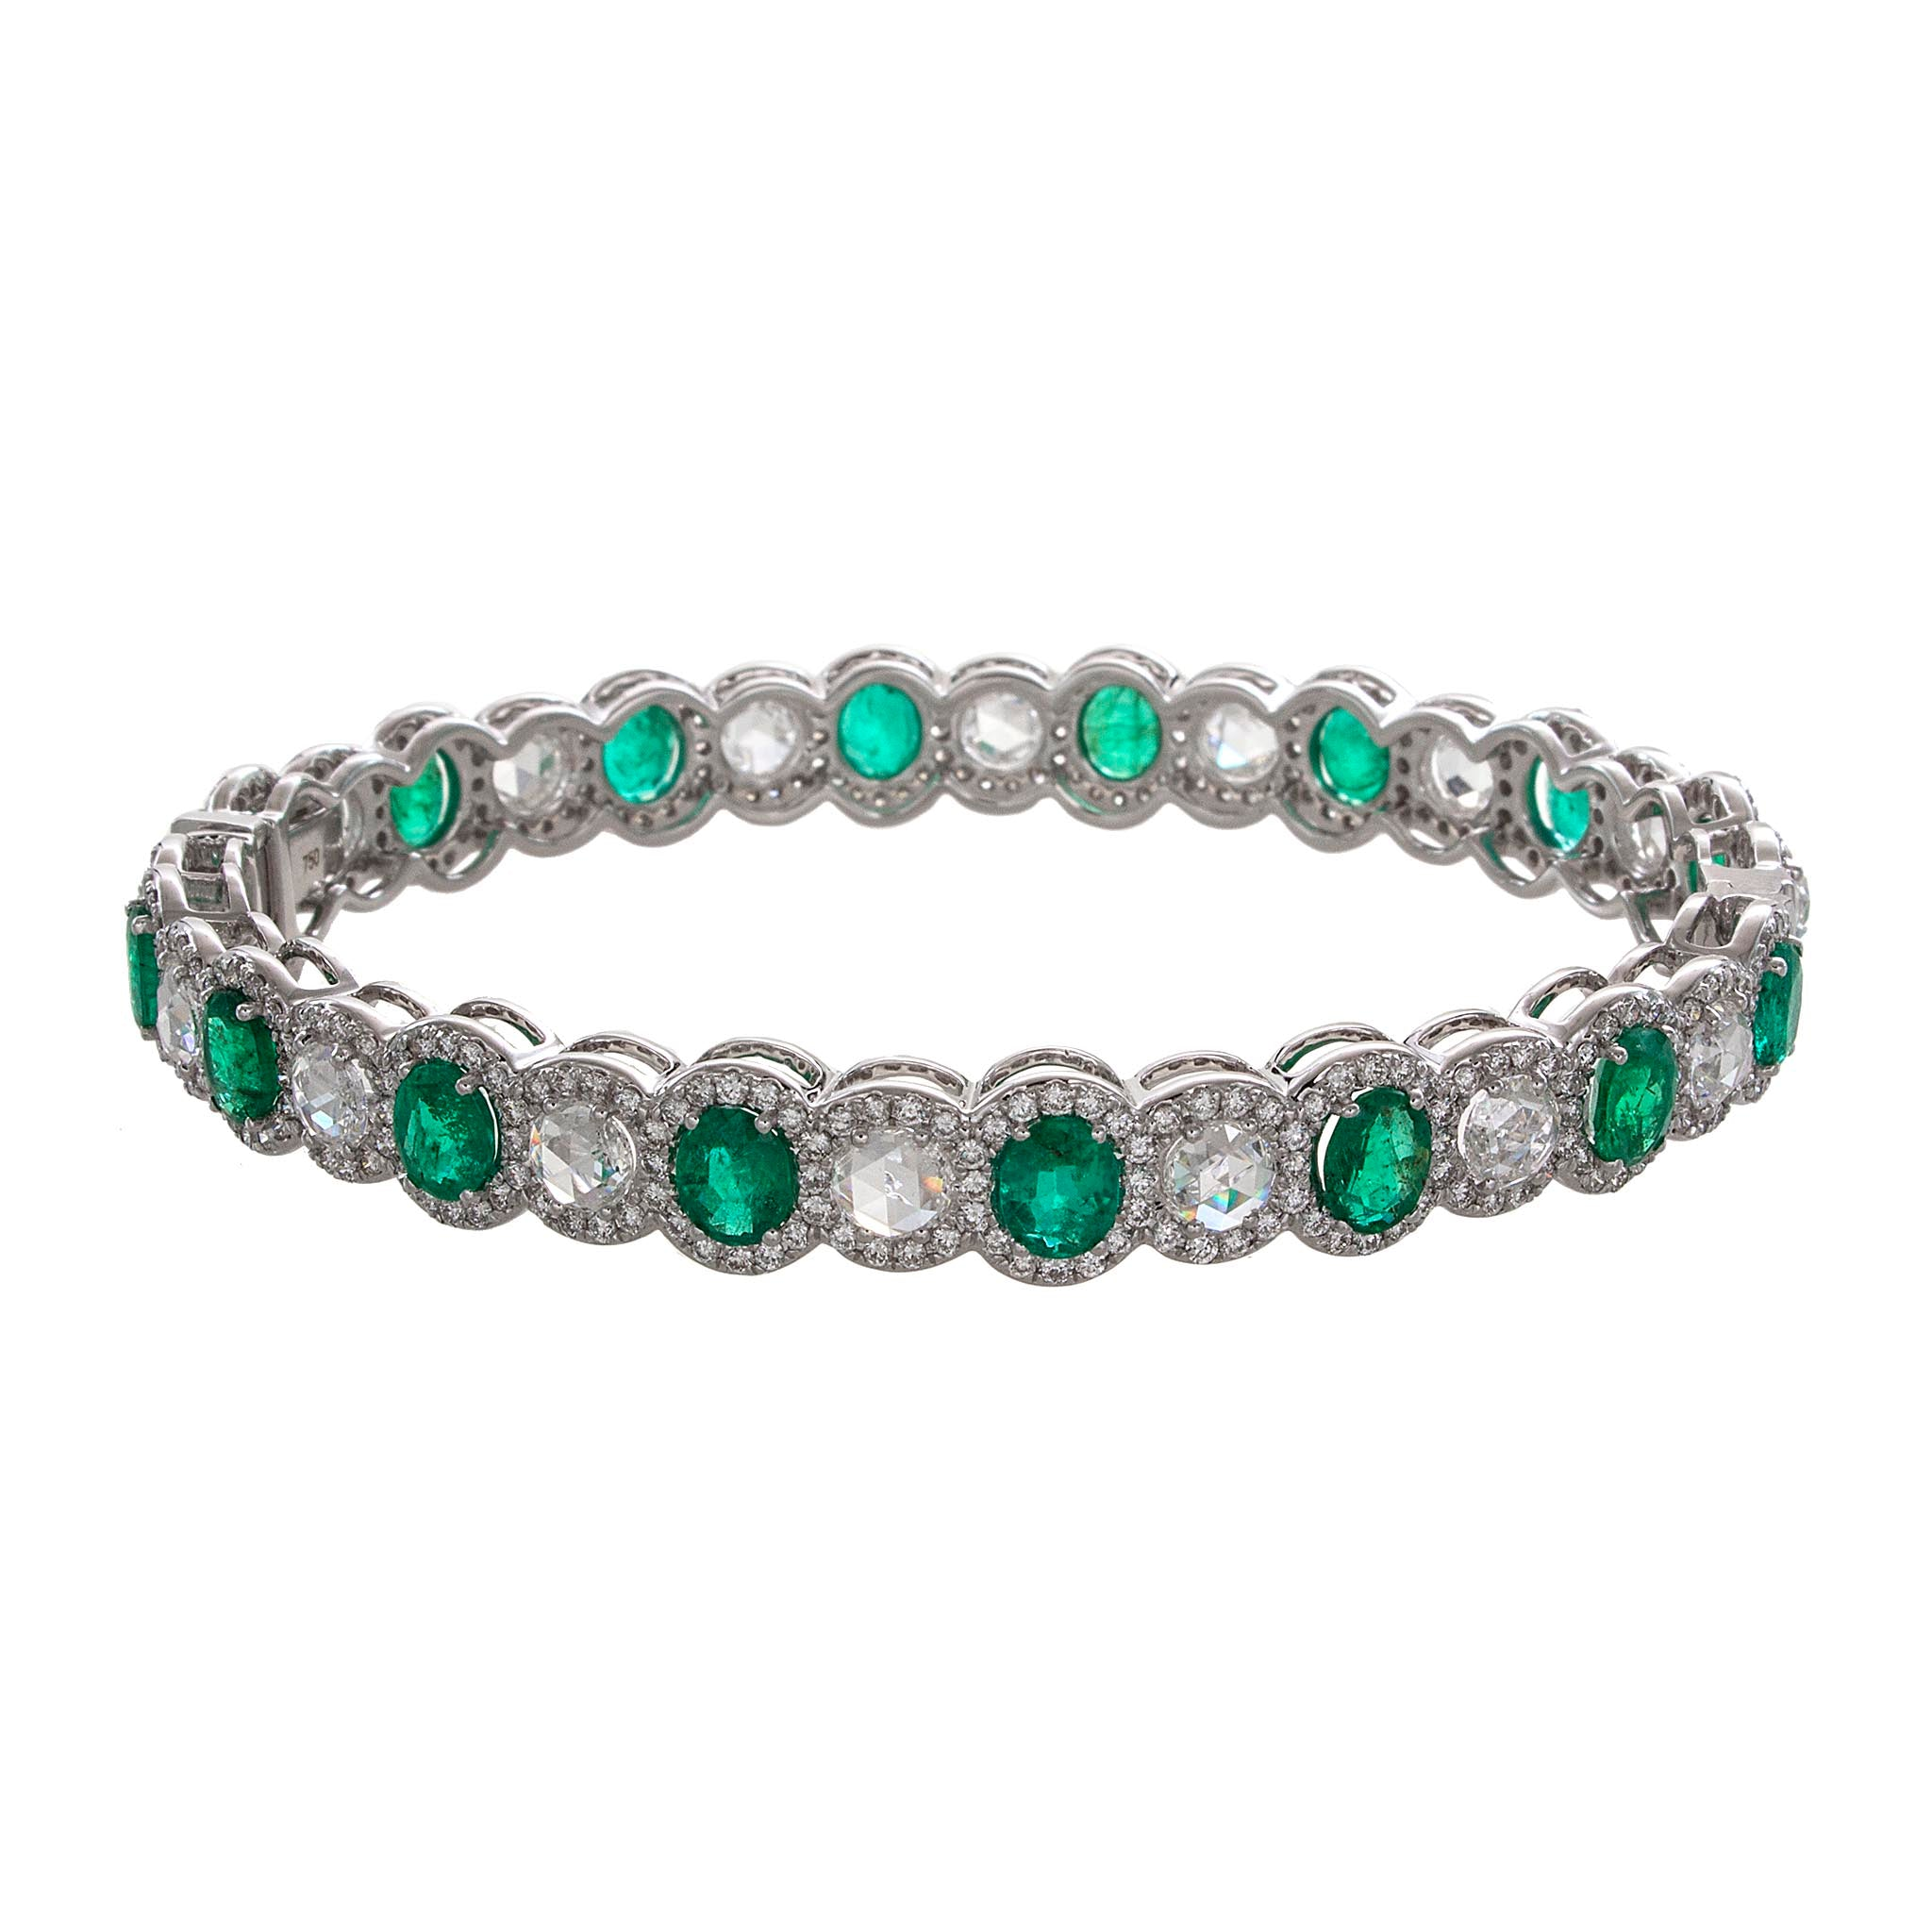 64Facets Bespoke Emerald and Diamond Bracelet creation